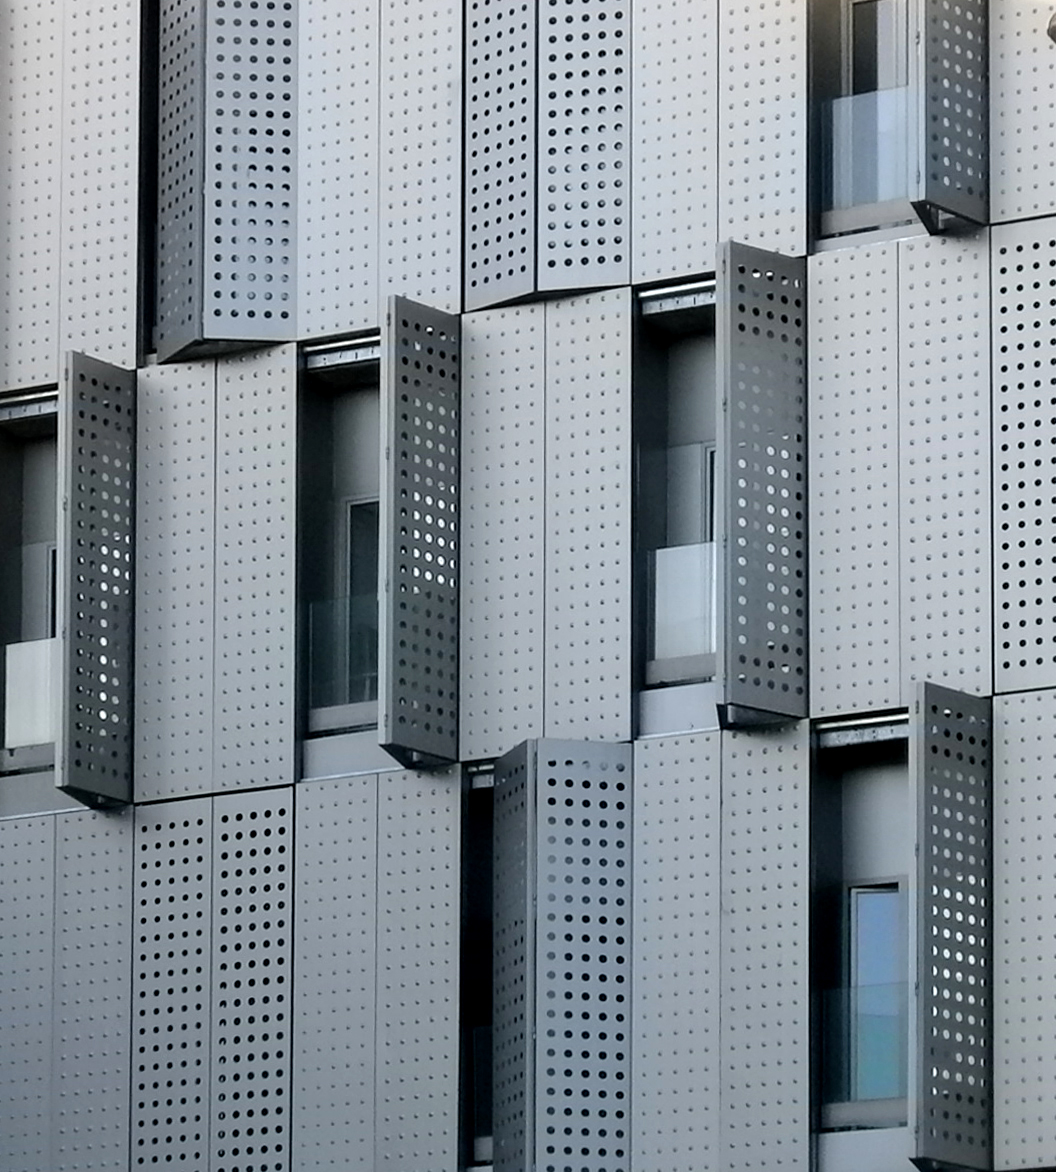 Façade of composite perforated shutters, Bcn [151] | filt3rs